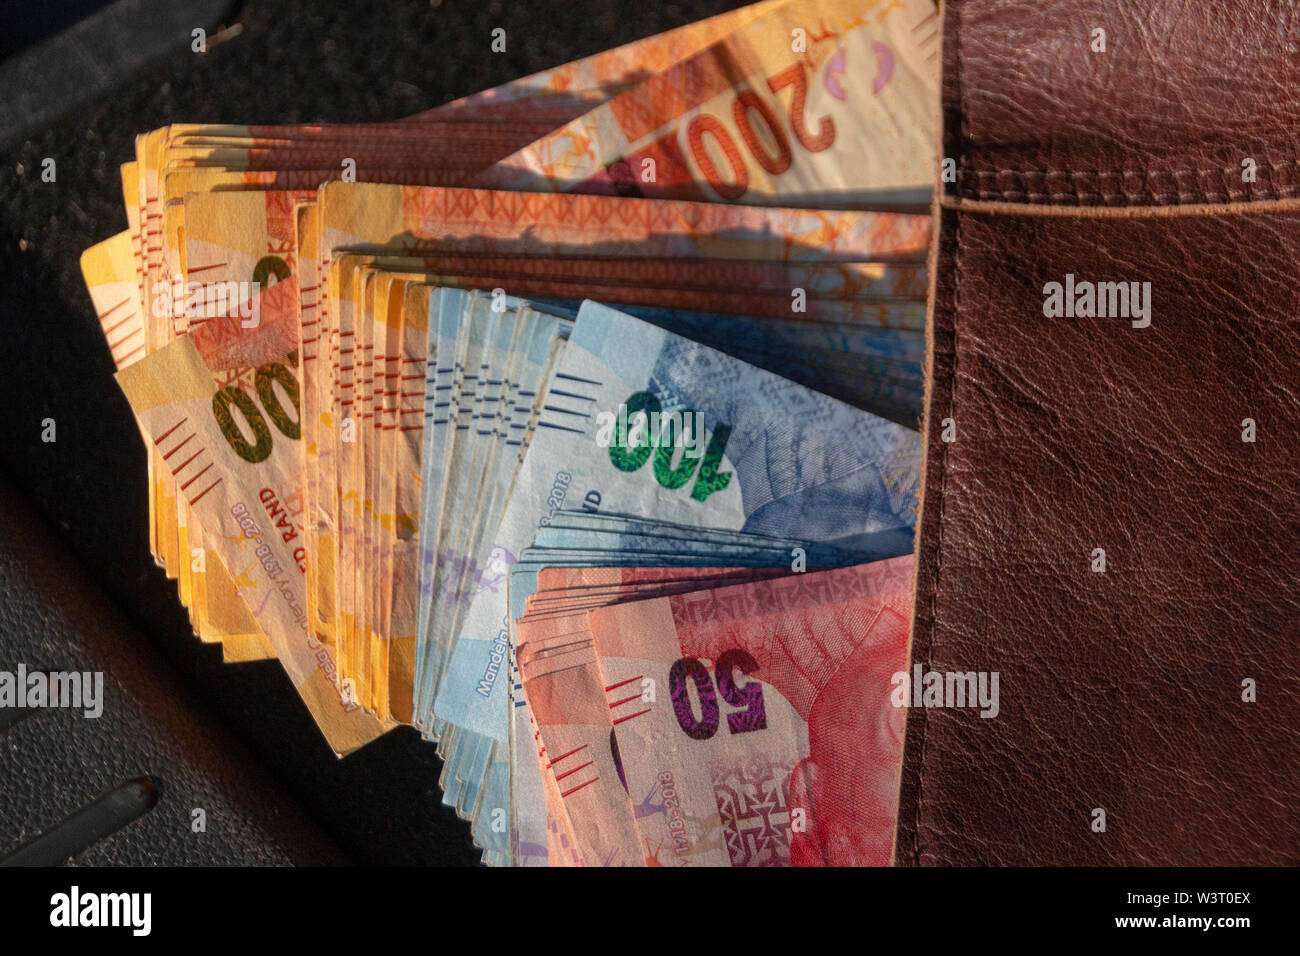 A close up view of pile of two hundred, one hundred and fifty rand sound african notes coming out the front of a brown leather handbag - Stock Image